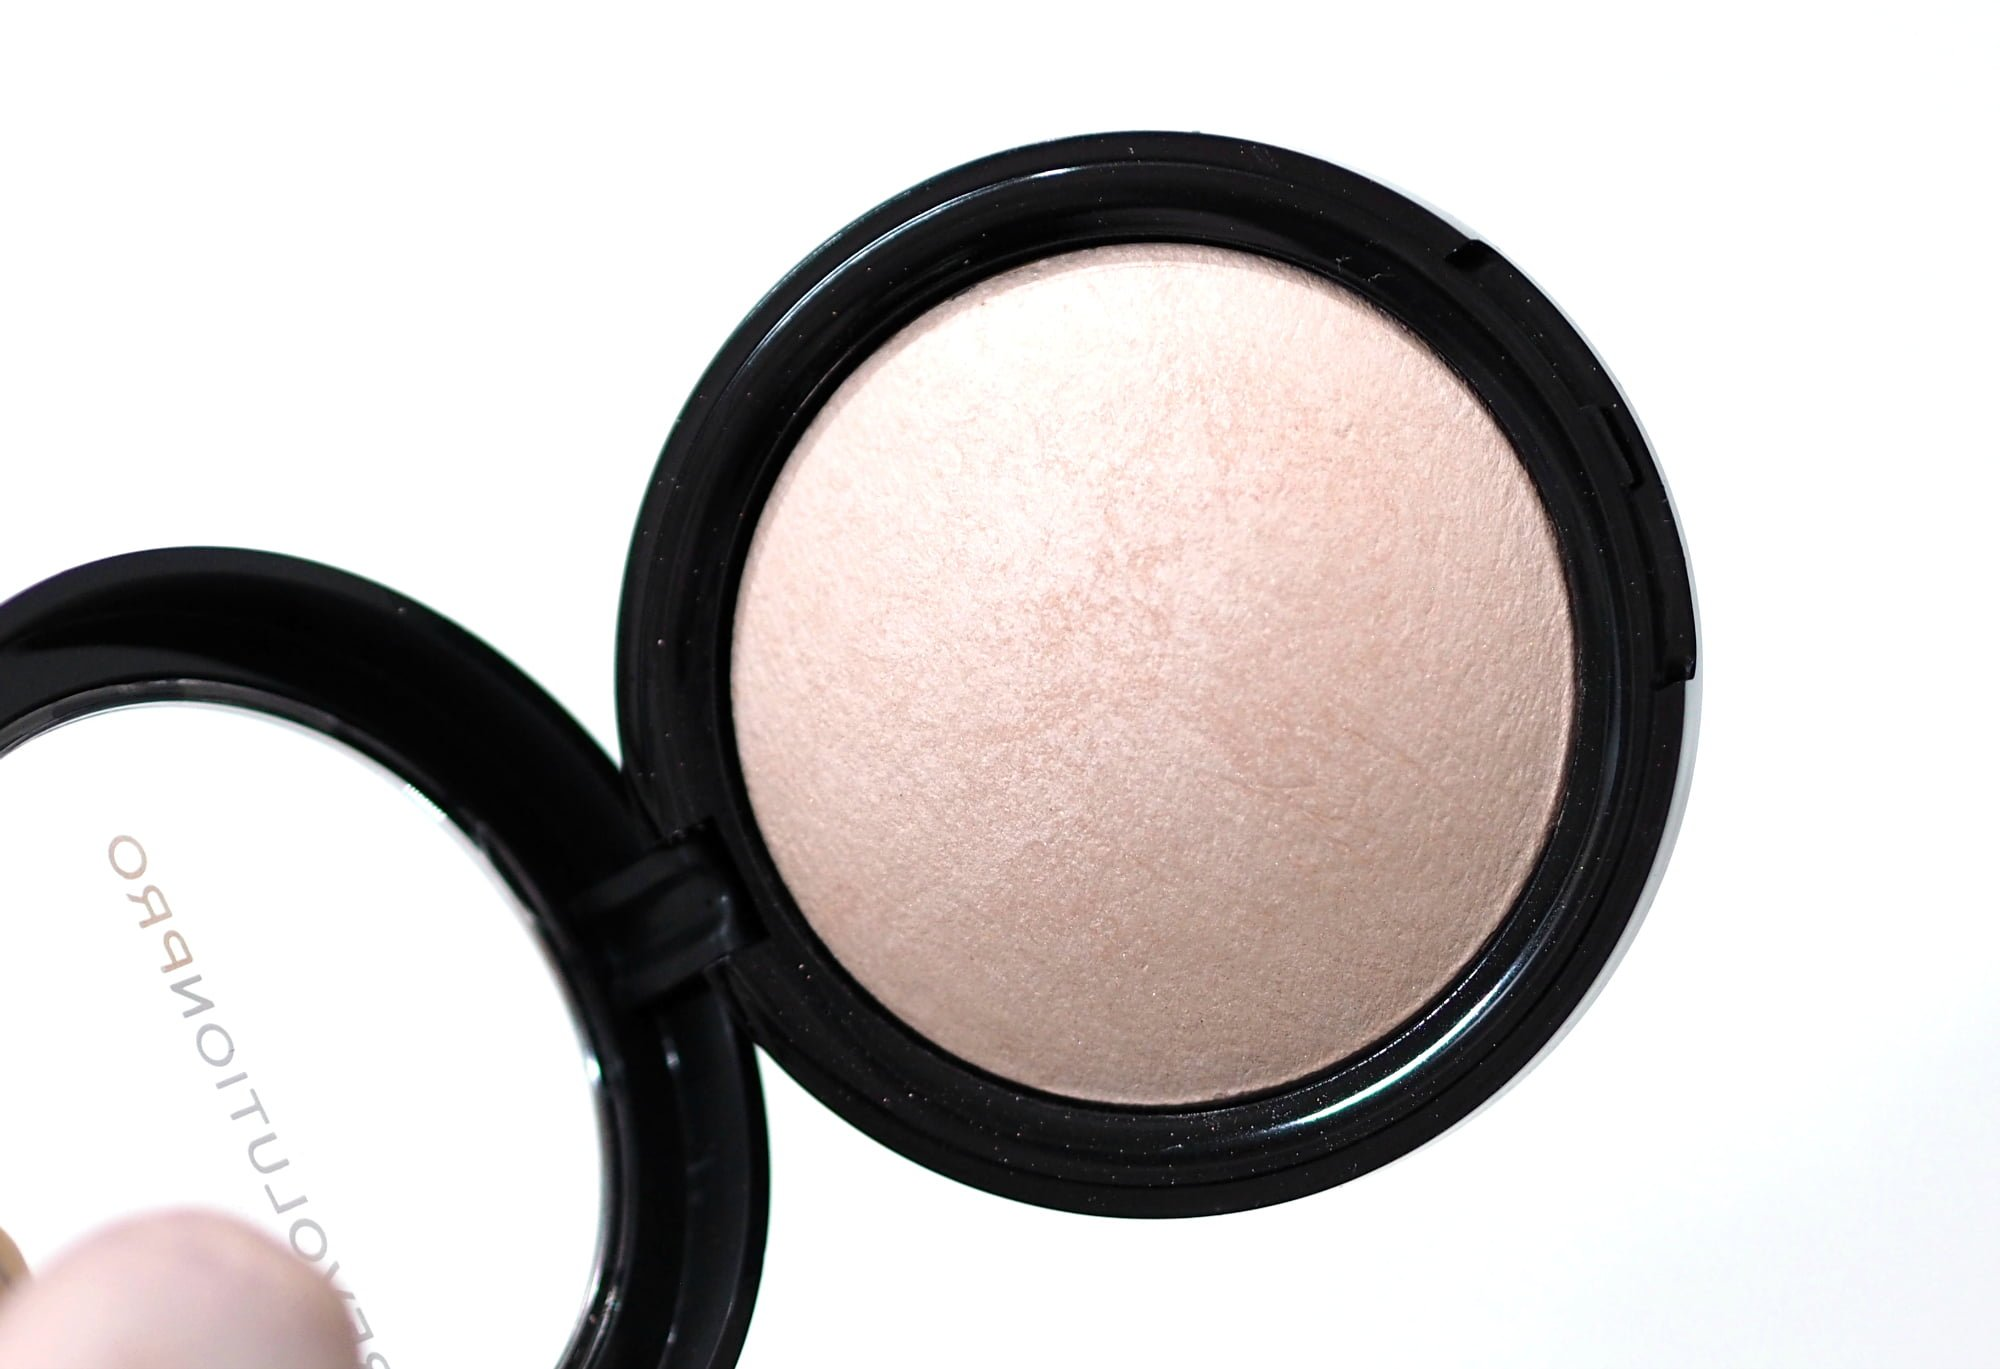 Revolution Pro Luminescence Skin Finish Powder Review and Swatches